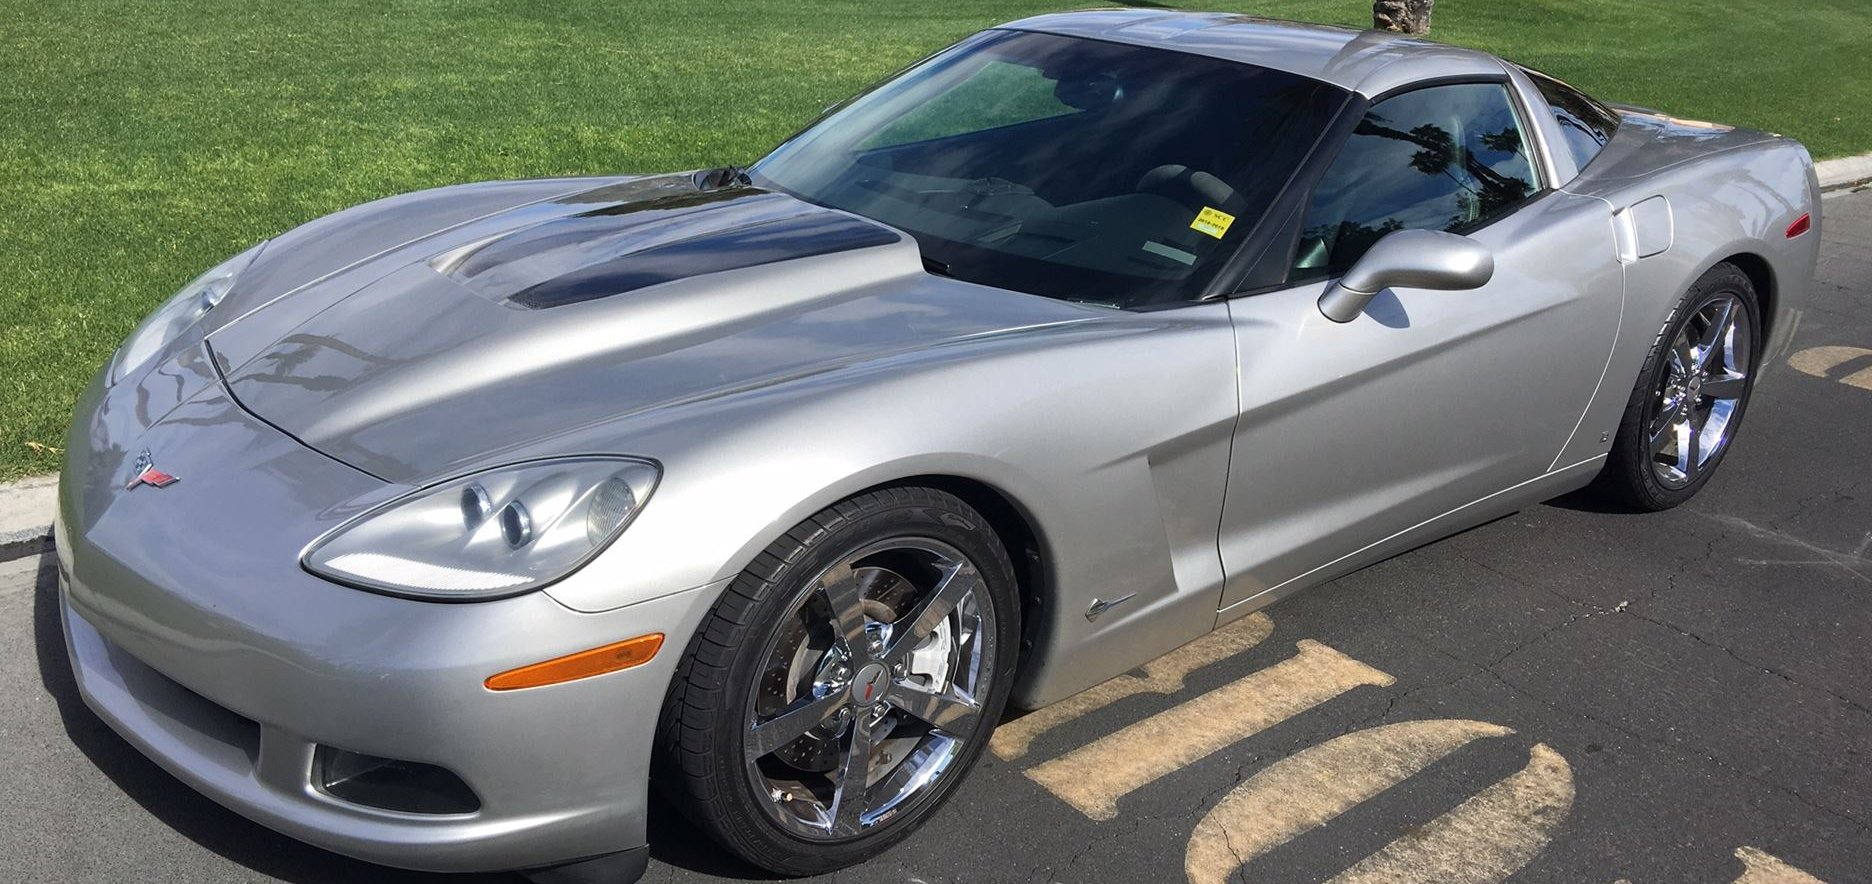 2008 Corvette coupe